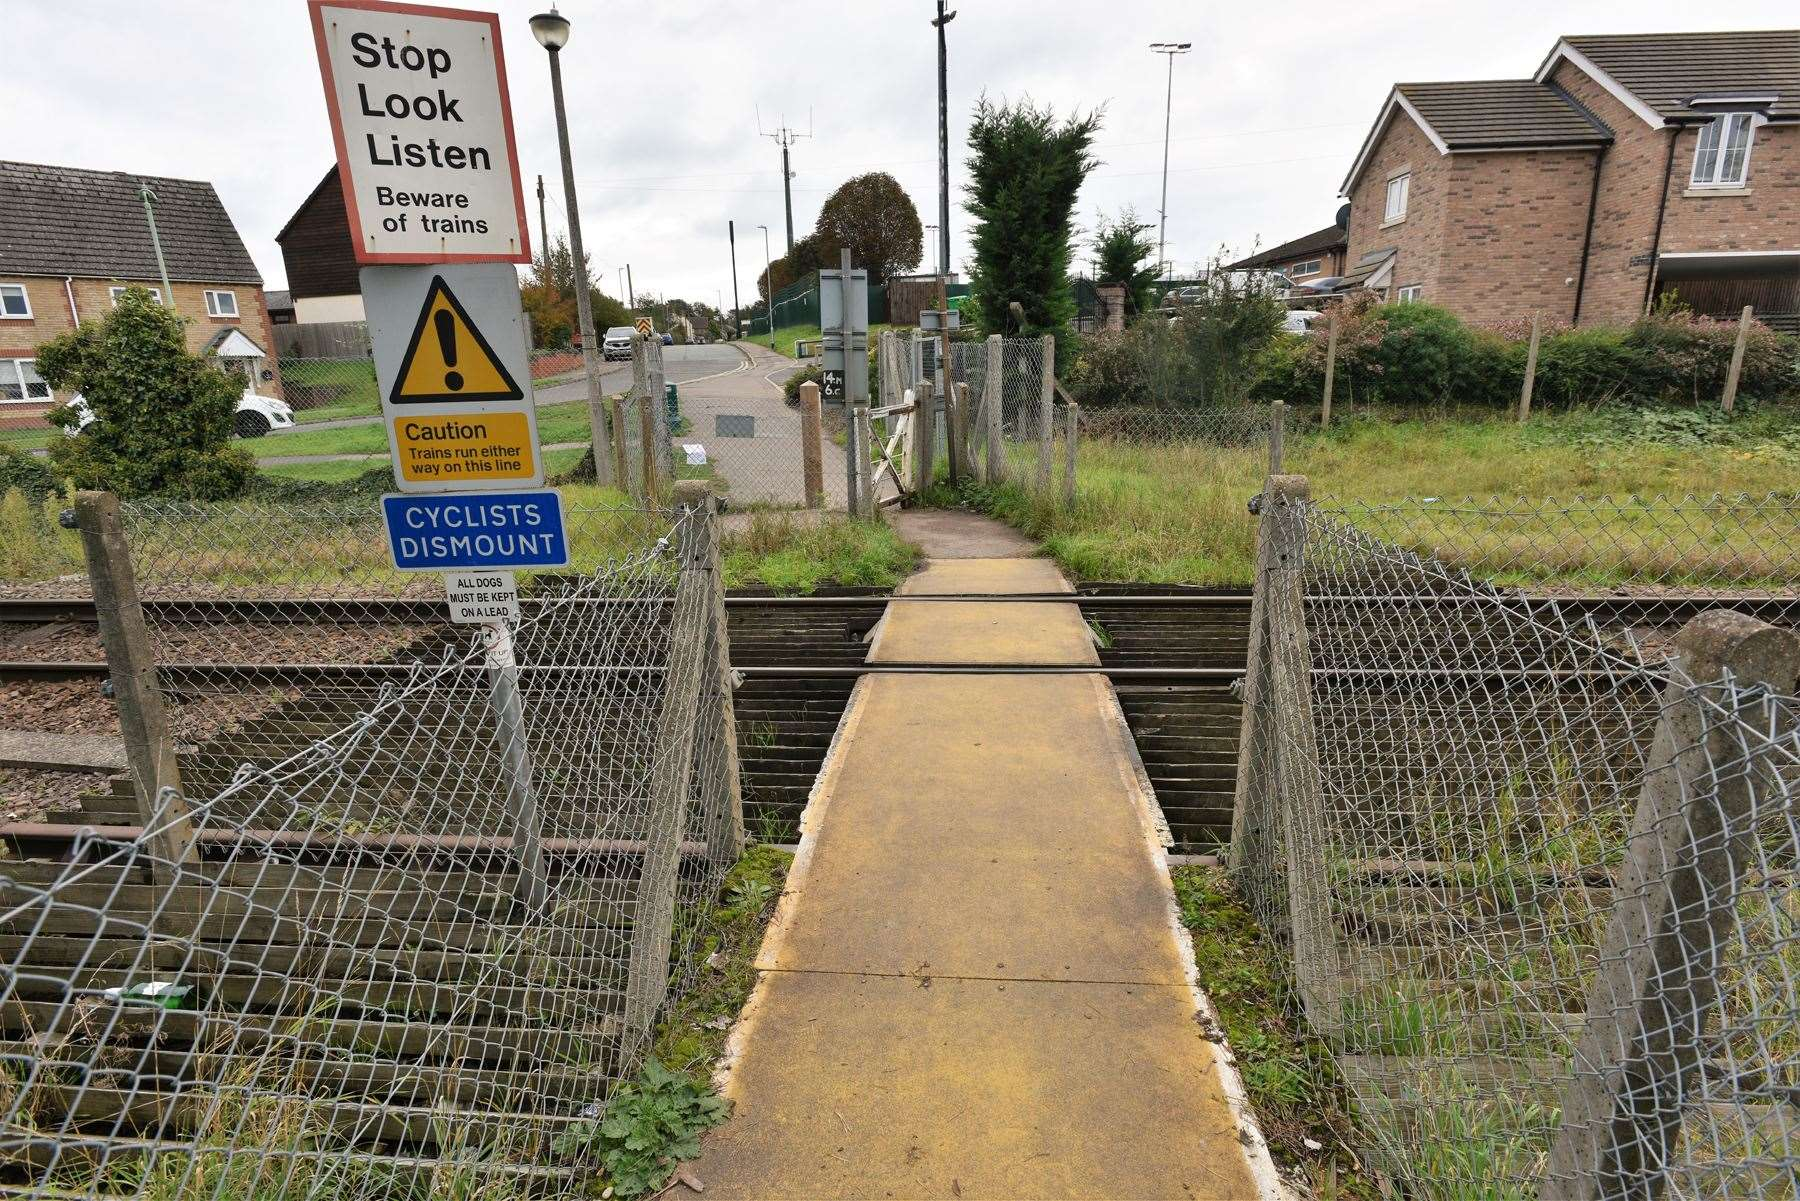 Newmarket Town Council, represented by barrister Merrow Golden, is fighting to keep the crossing open while Network Rail has argued the route is not a public right of way and should be closed.